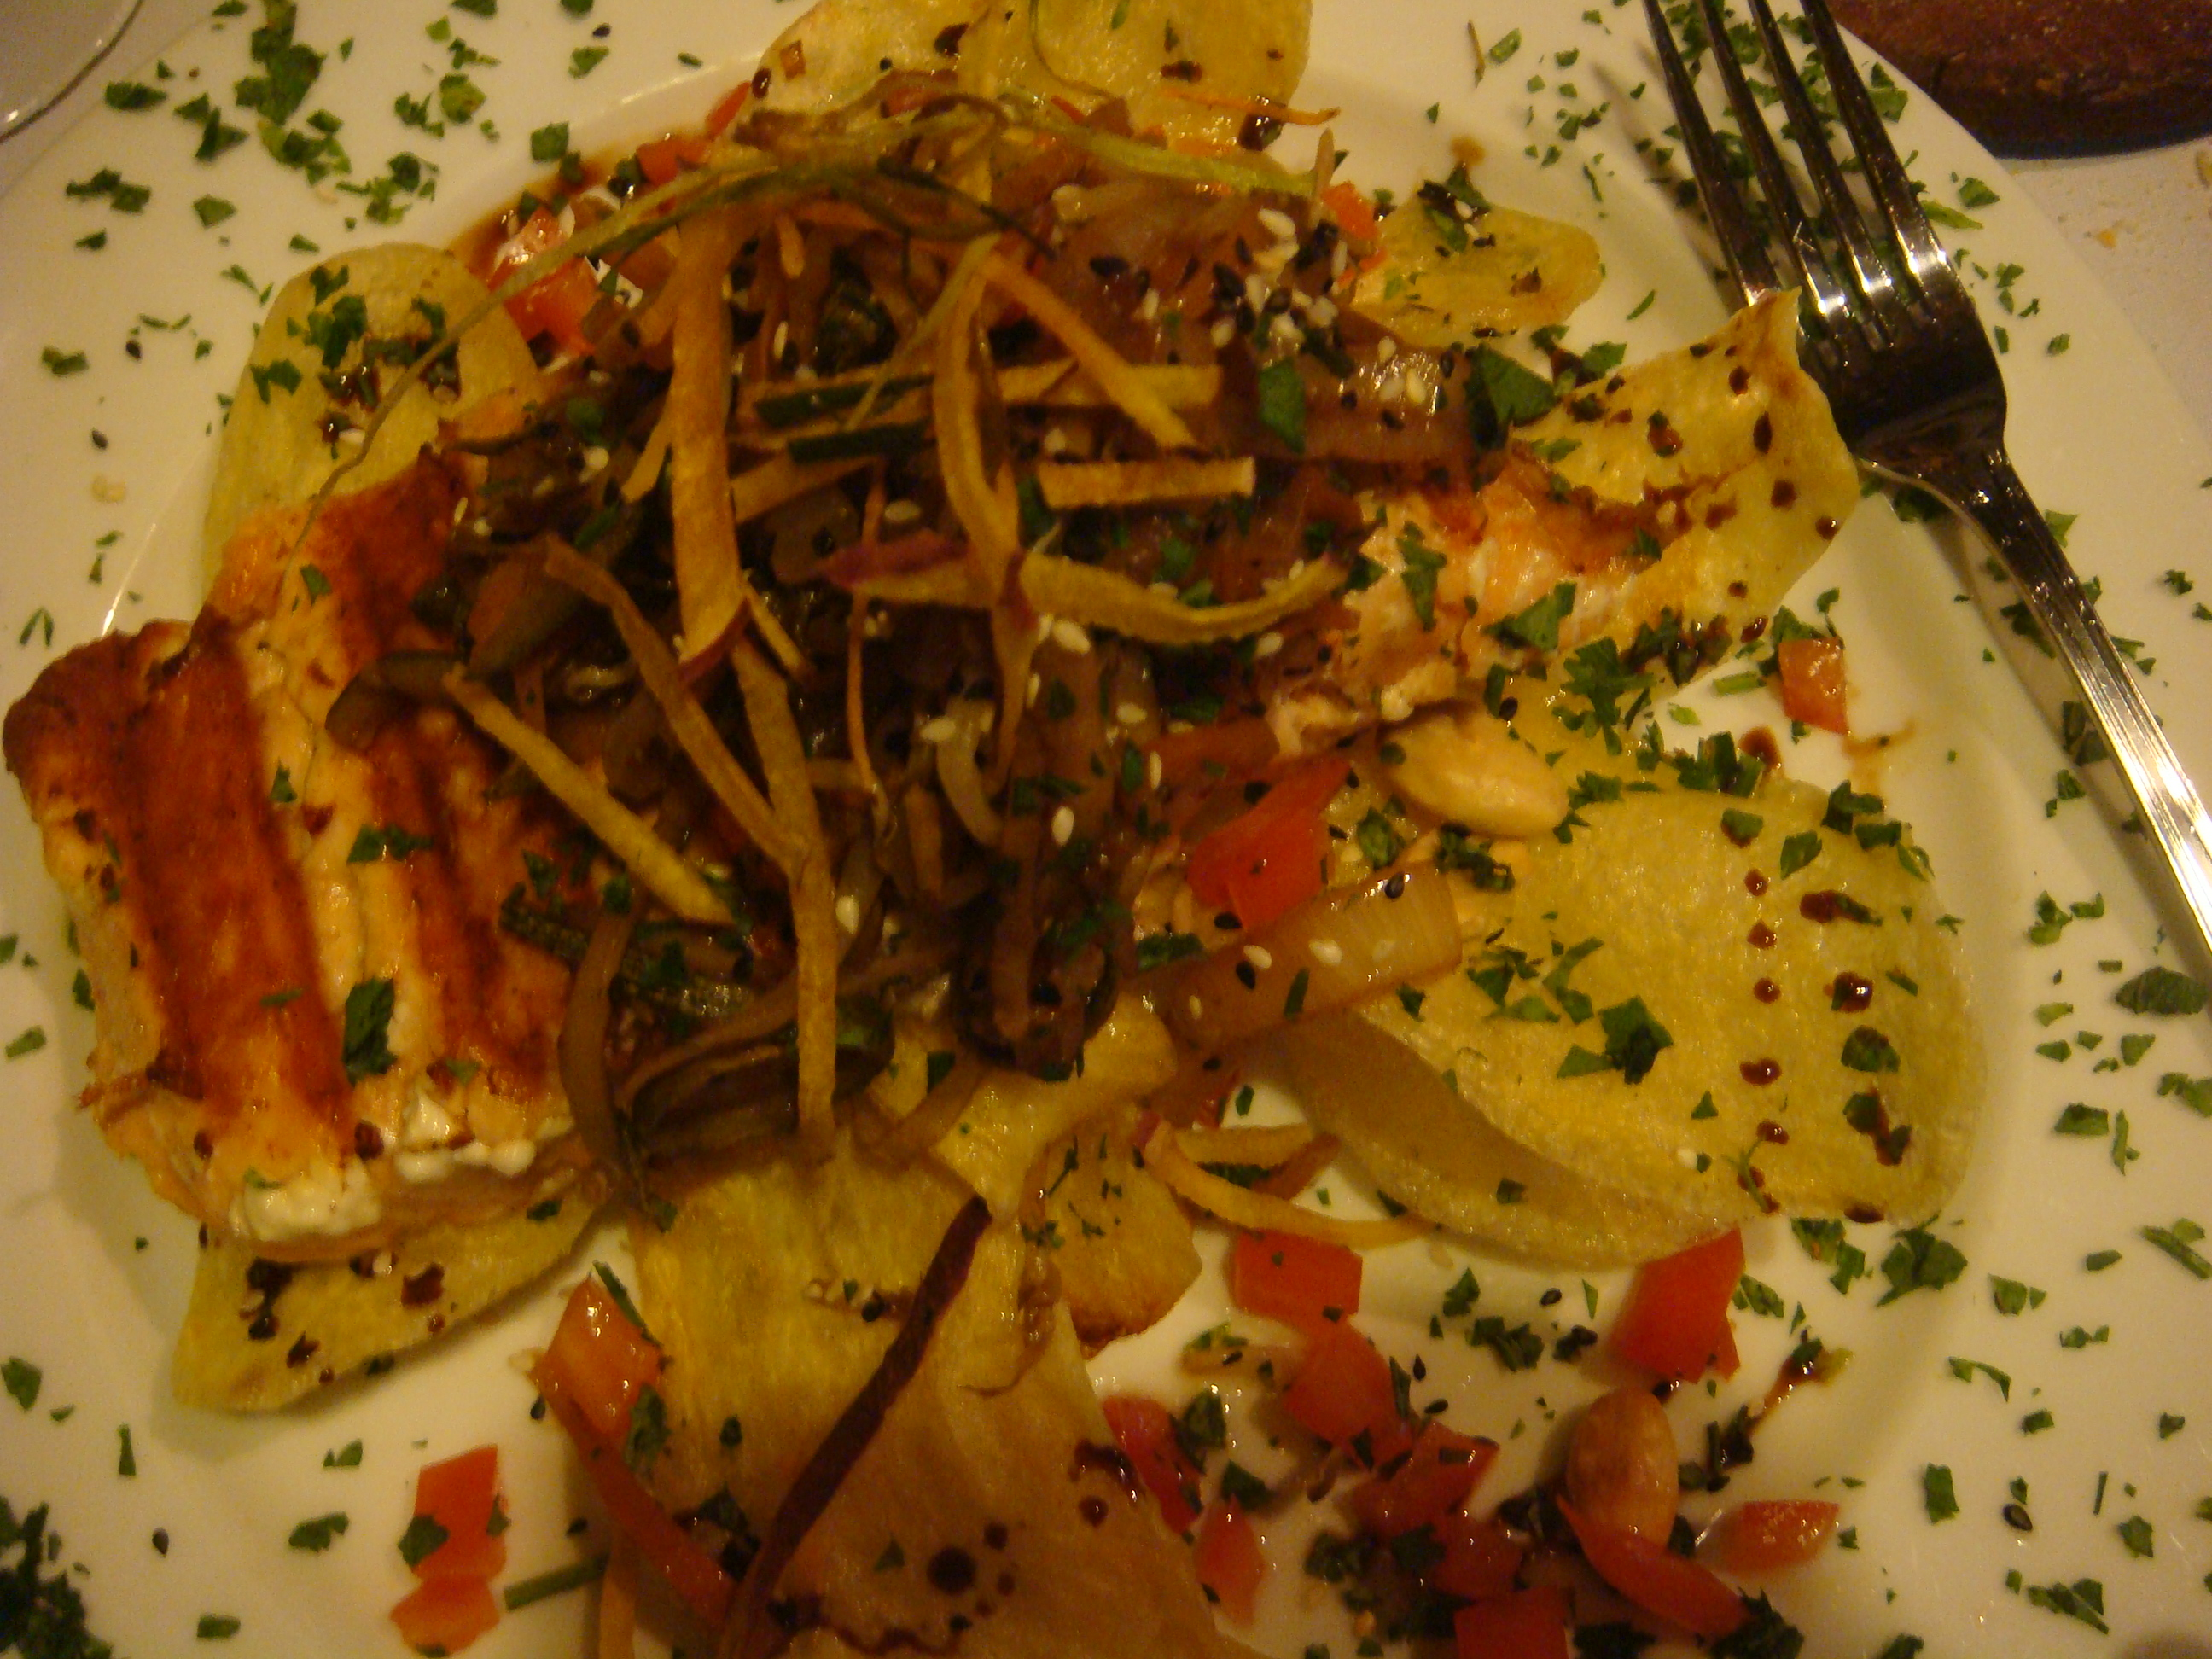 Grilled salmon and crispy potato slices, garnished with sauteed vegetables